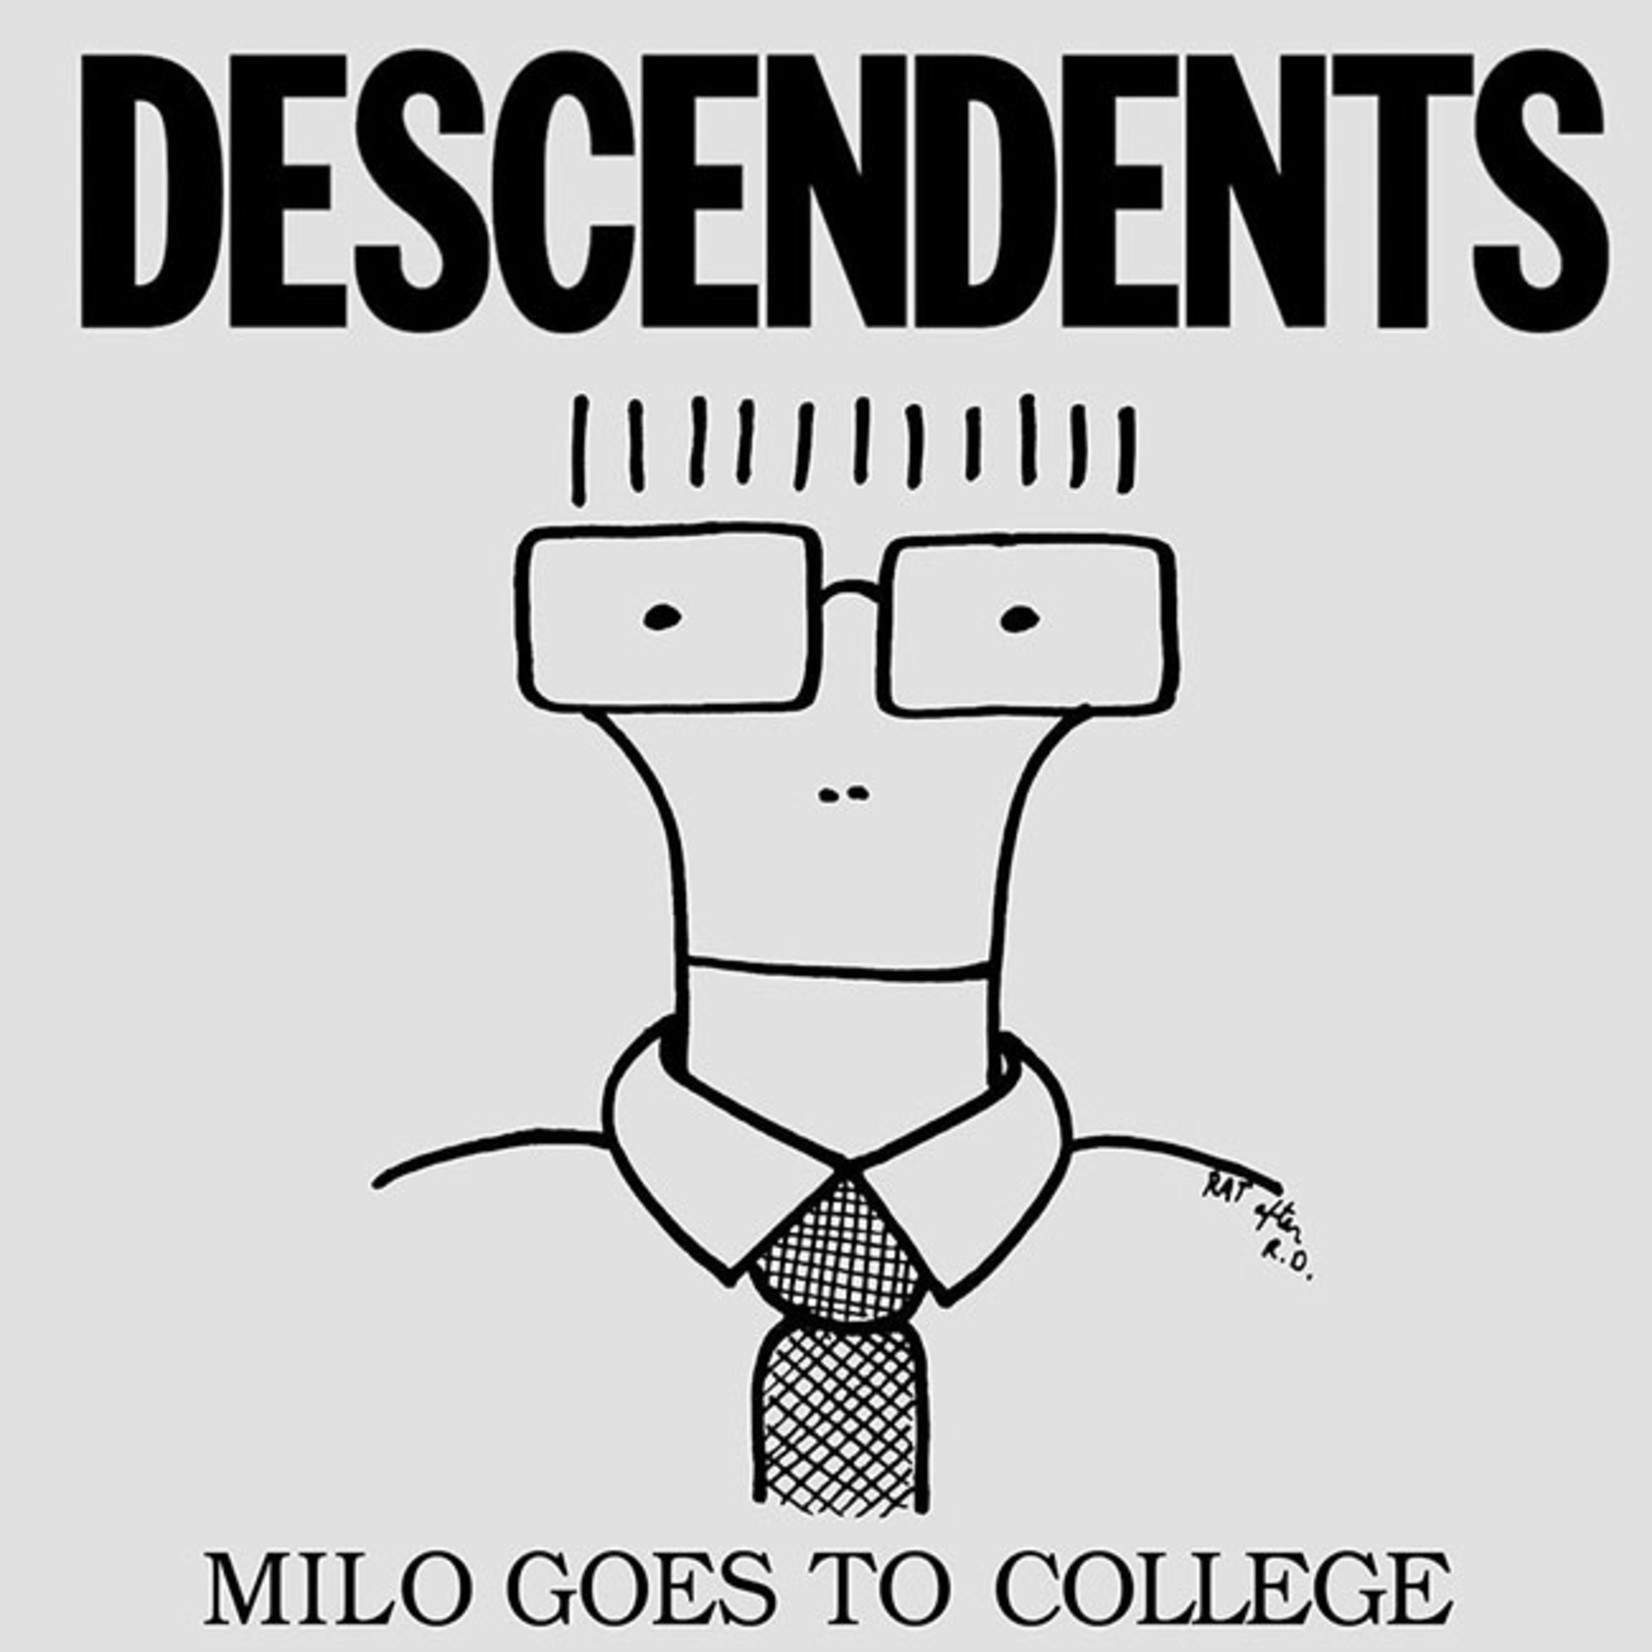 [New] Descendents: Milo Goes to College